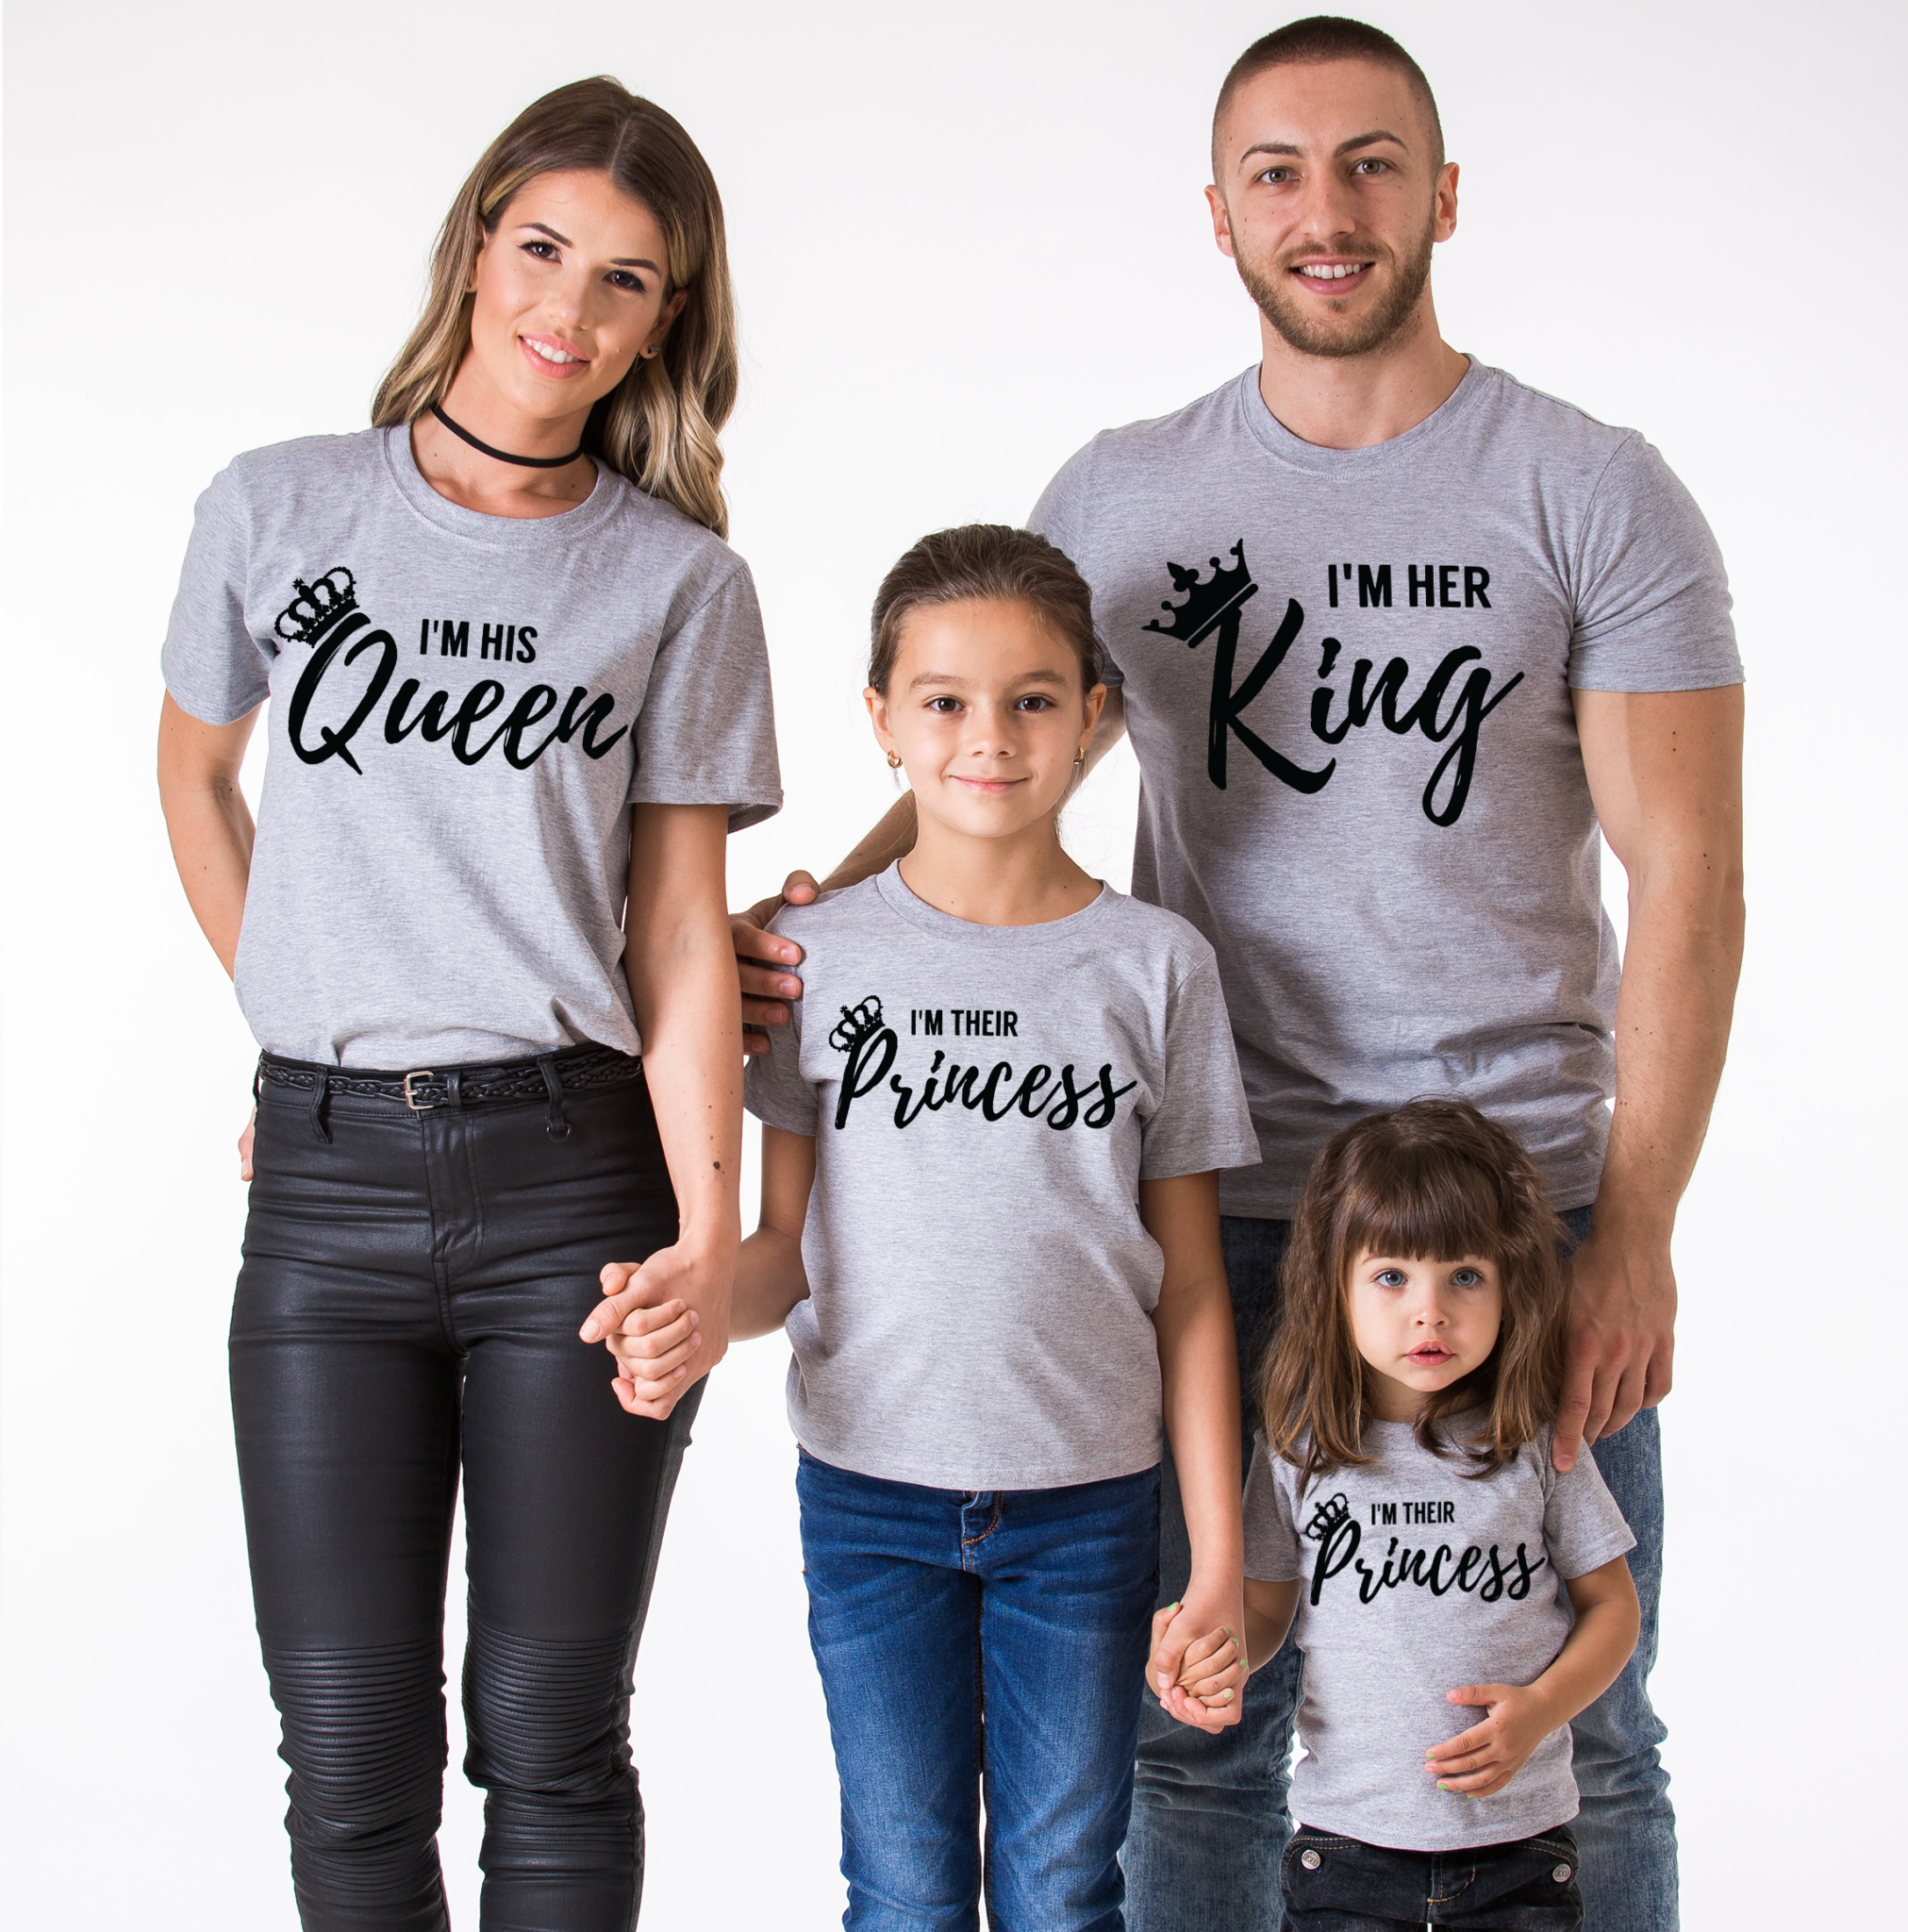 ecf16f8a2a King Queen Family, Her King, His Queen, Their Prince, Their Princess